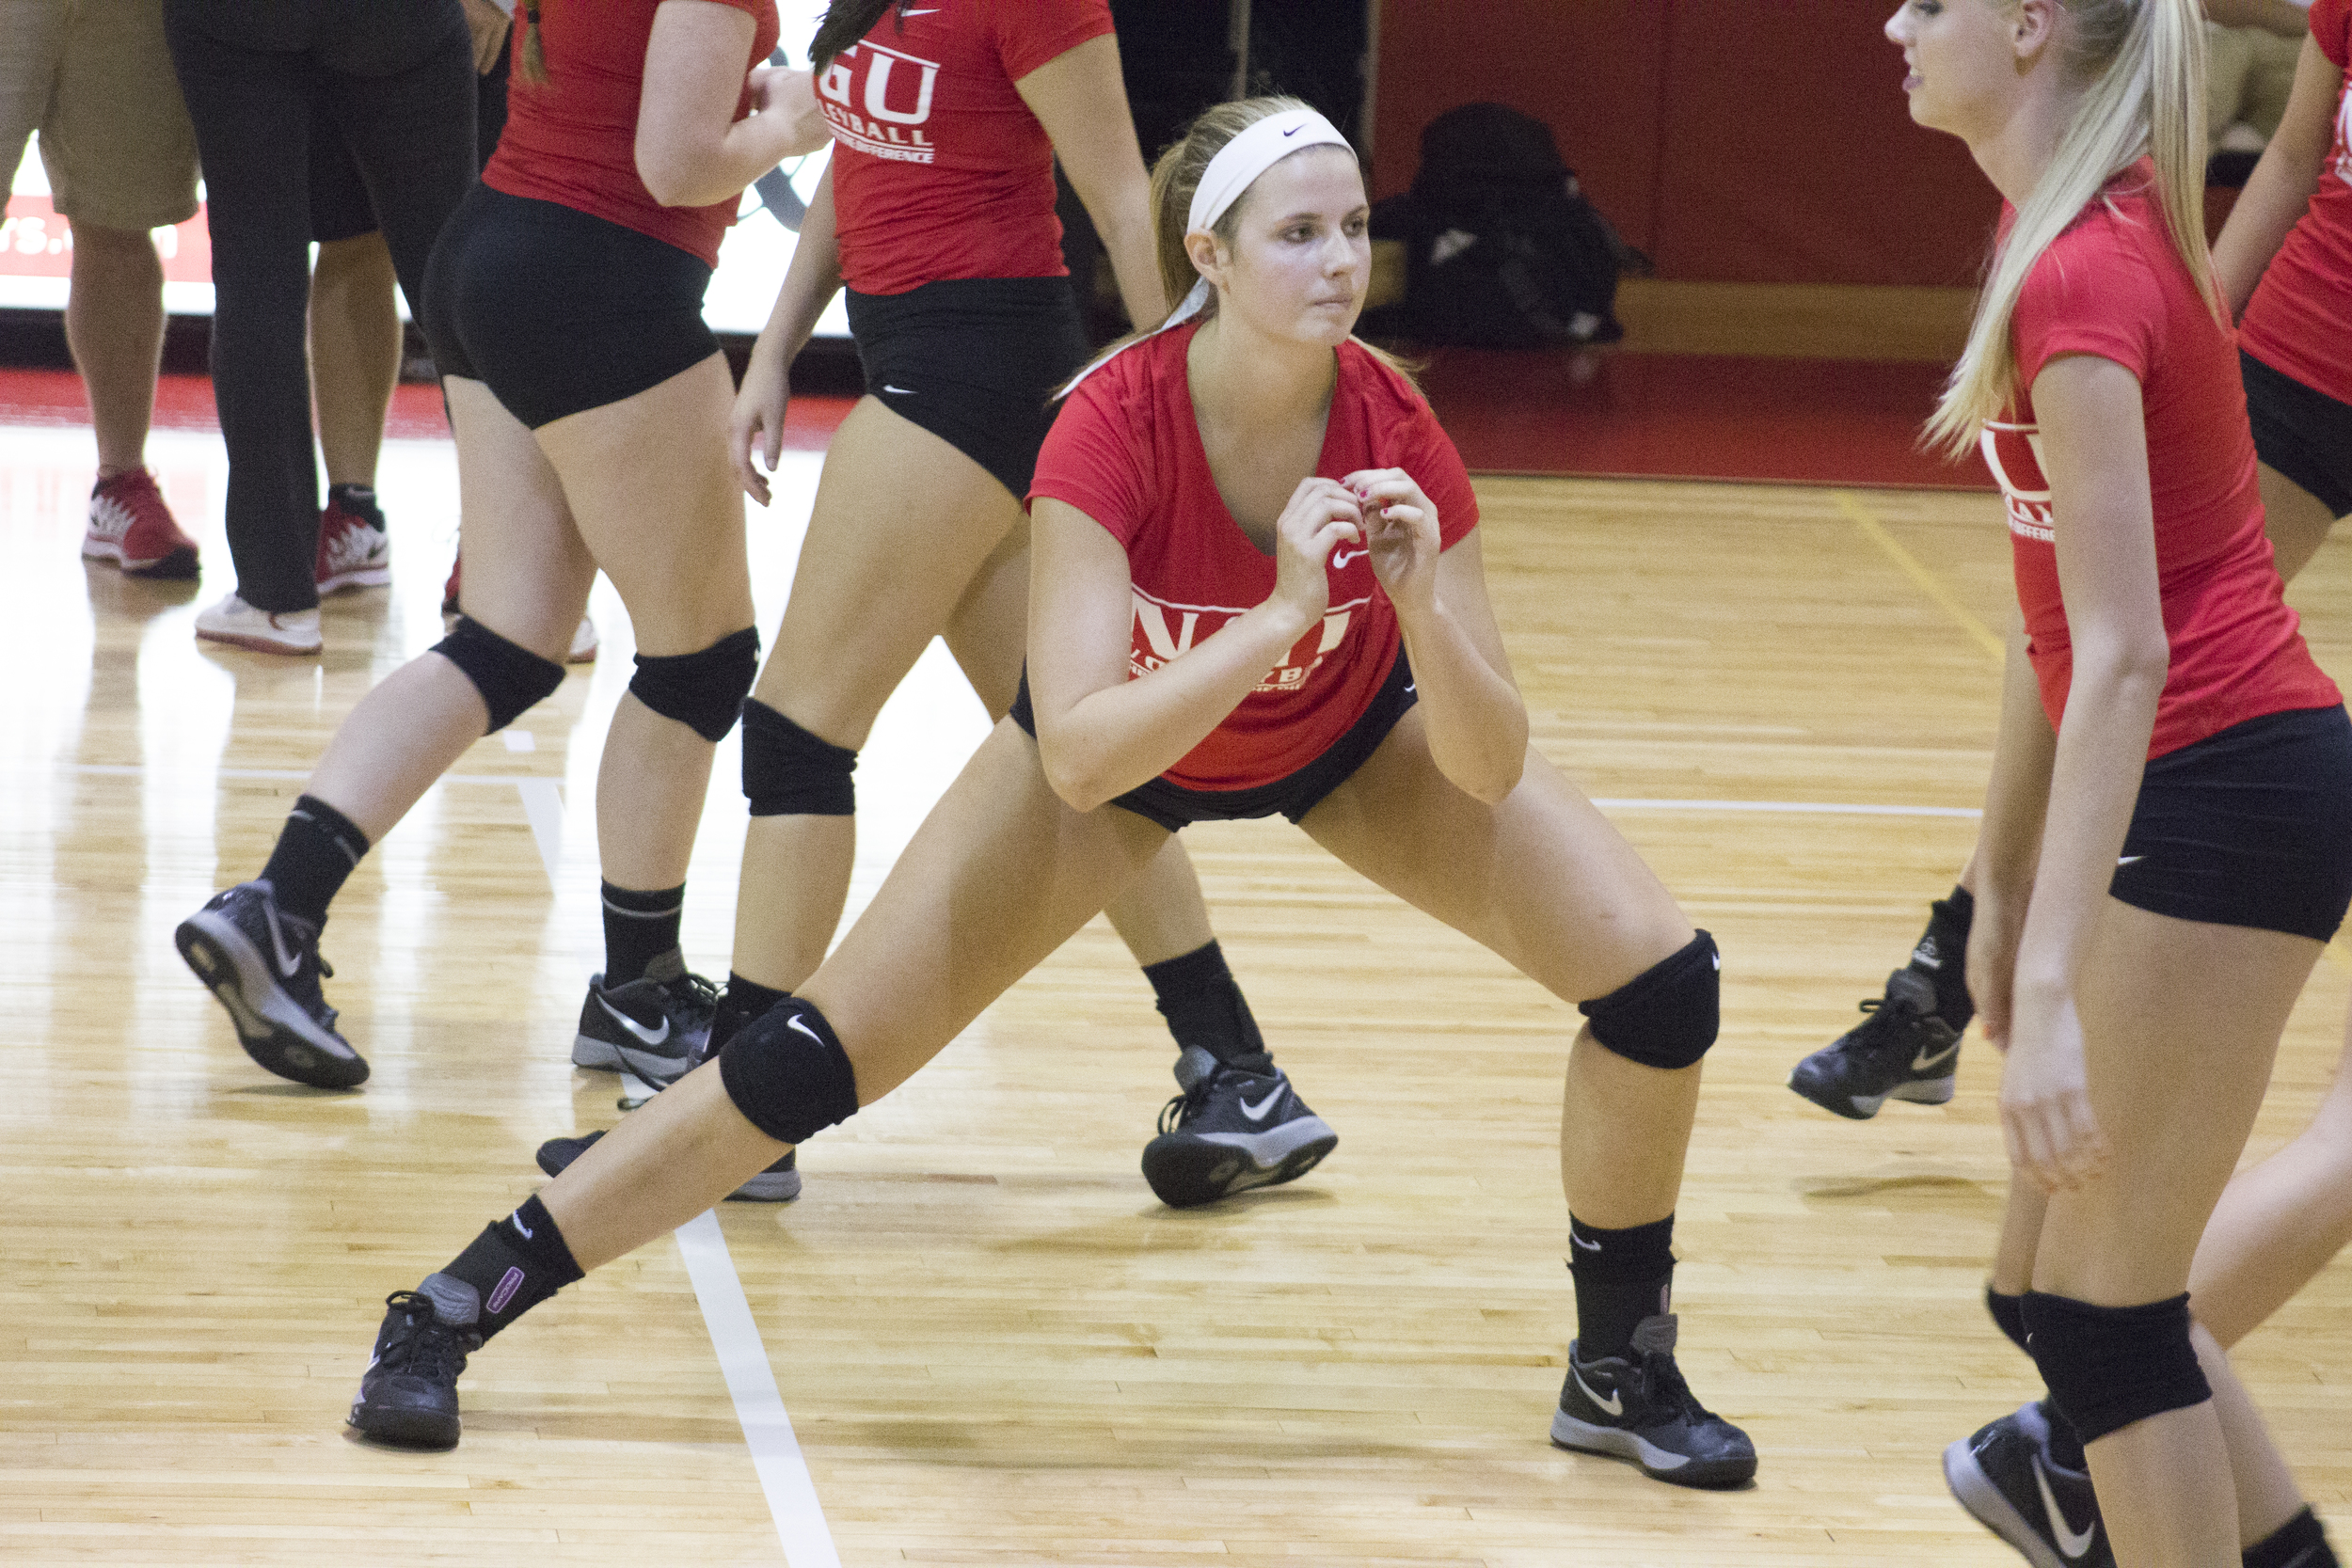 Sophomore Sommer Cagle stretches prior to the match.